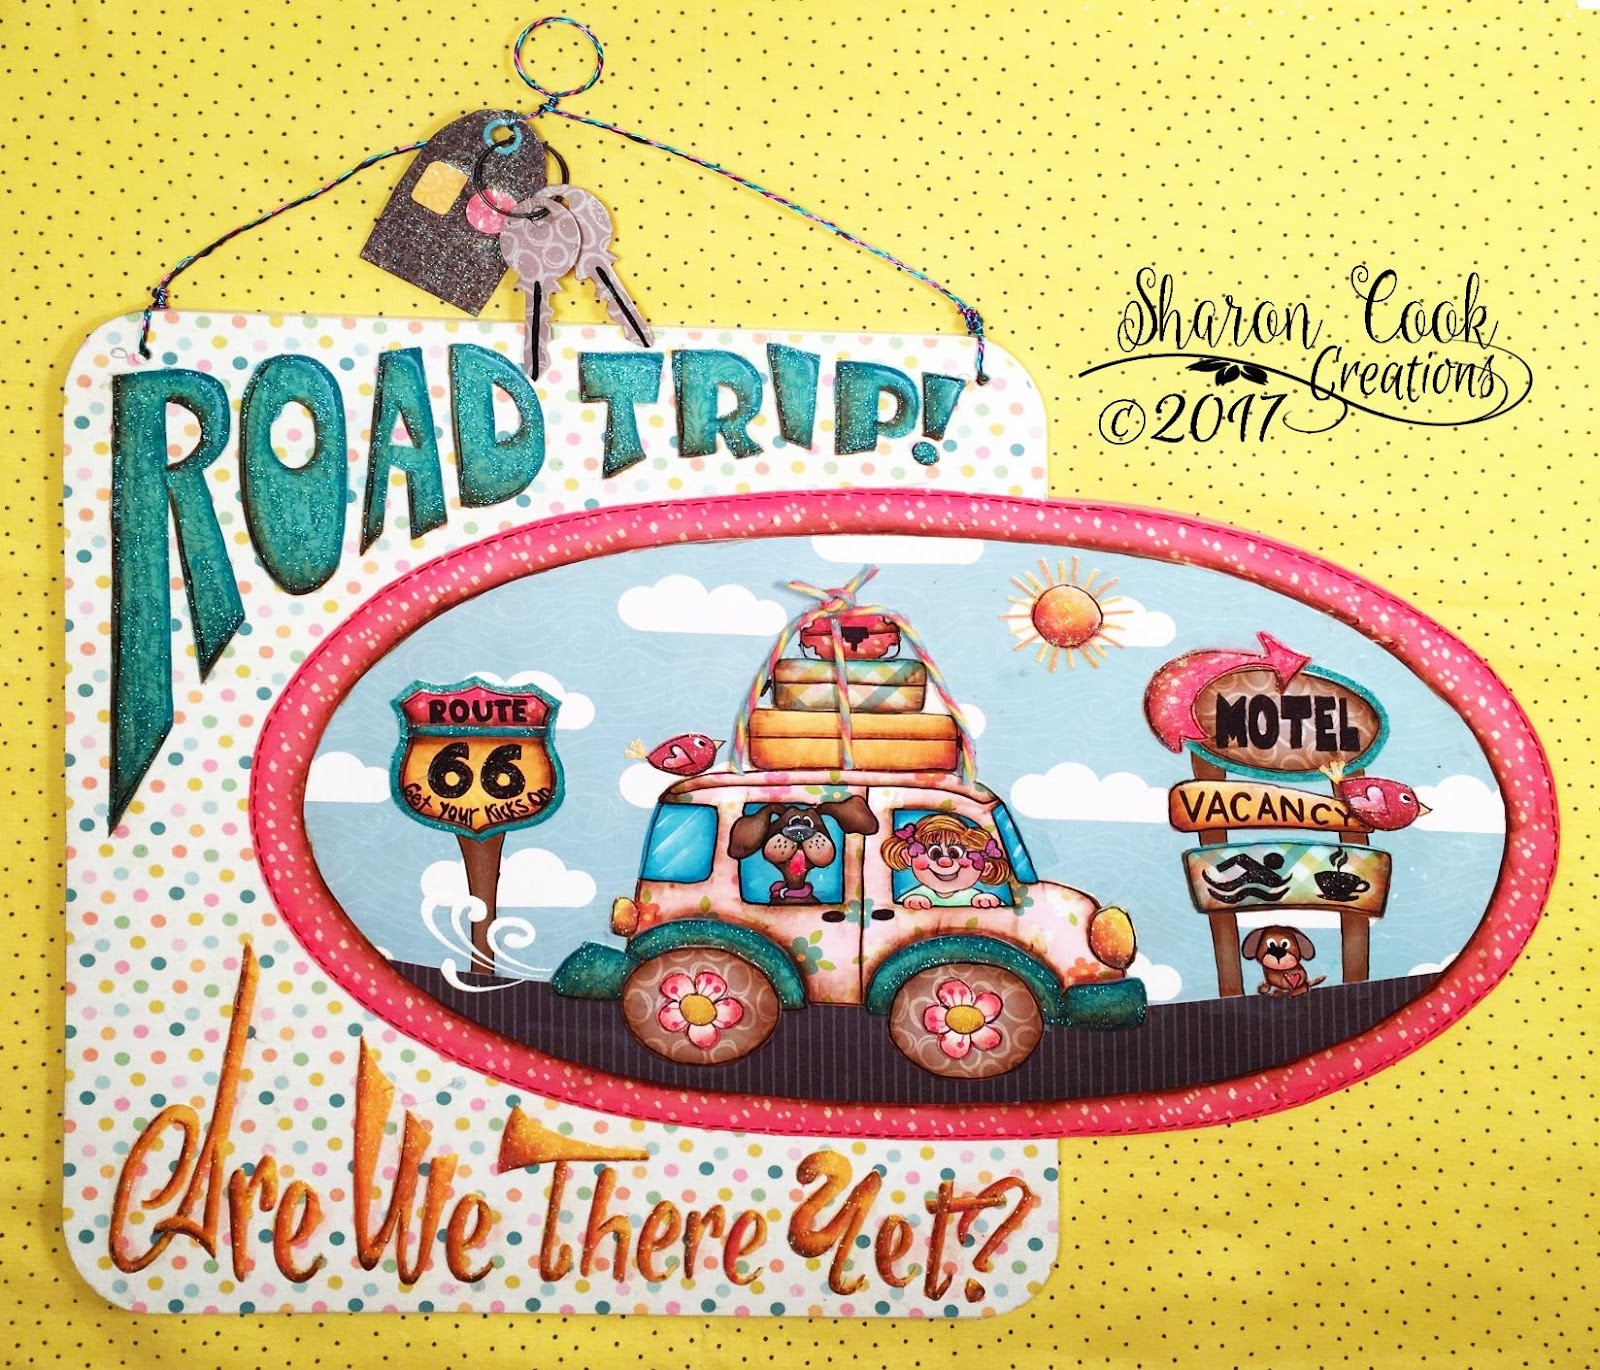 How to scrapbook a road trip - Pull Out Those Bits And Pieces Of Scrapbook Paper You Ve Been Saving And Start Planning The Color Scheme For Your Version Of This Project